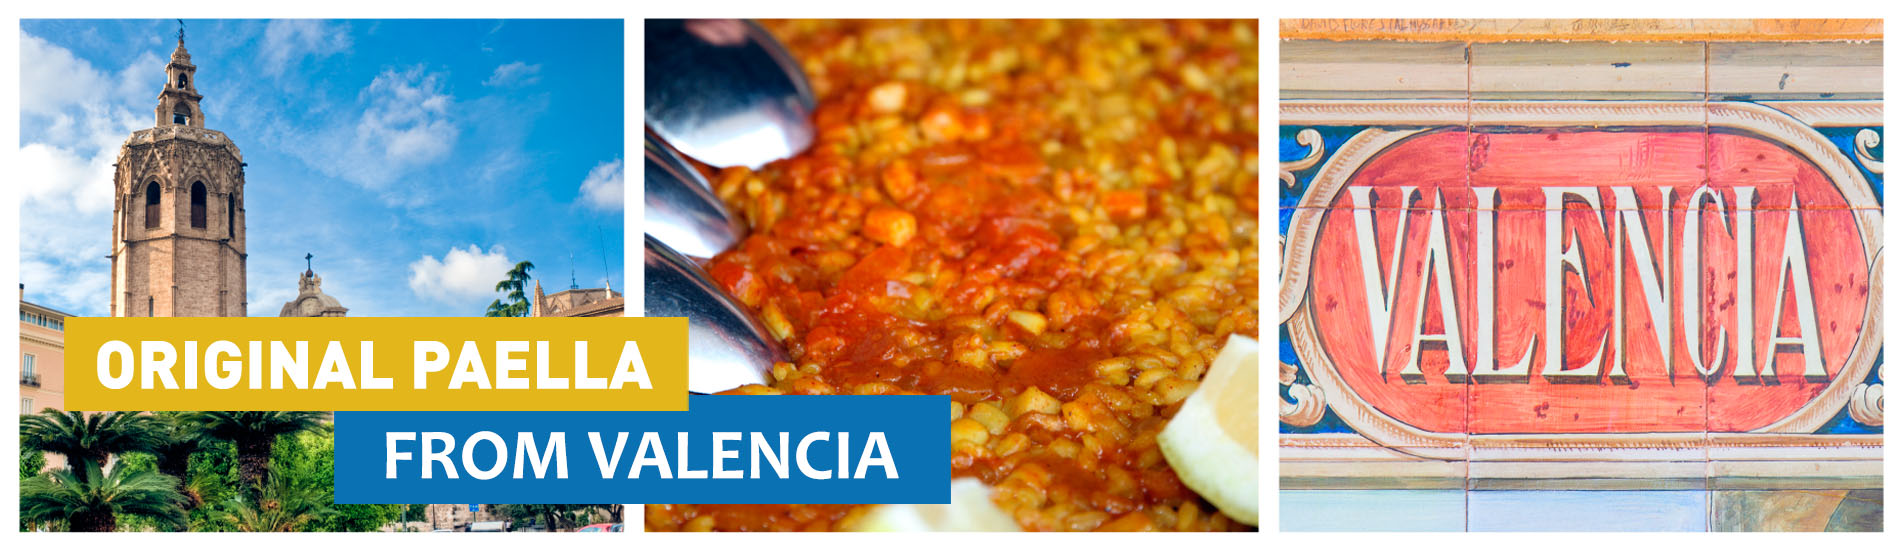 ORIGINALPAELLA FROM VALENCIA